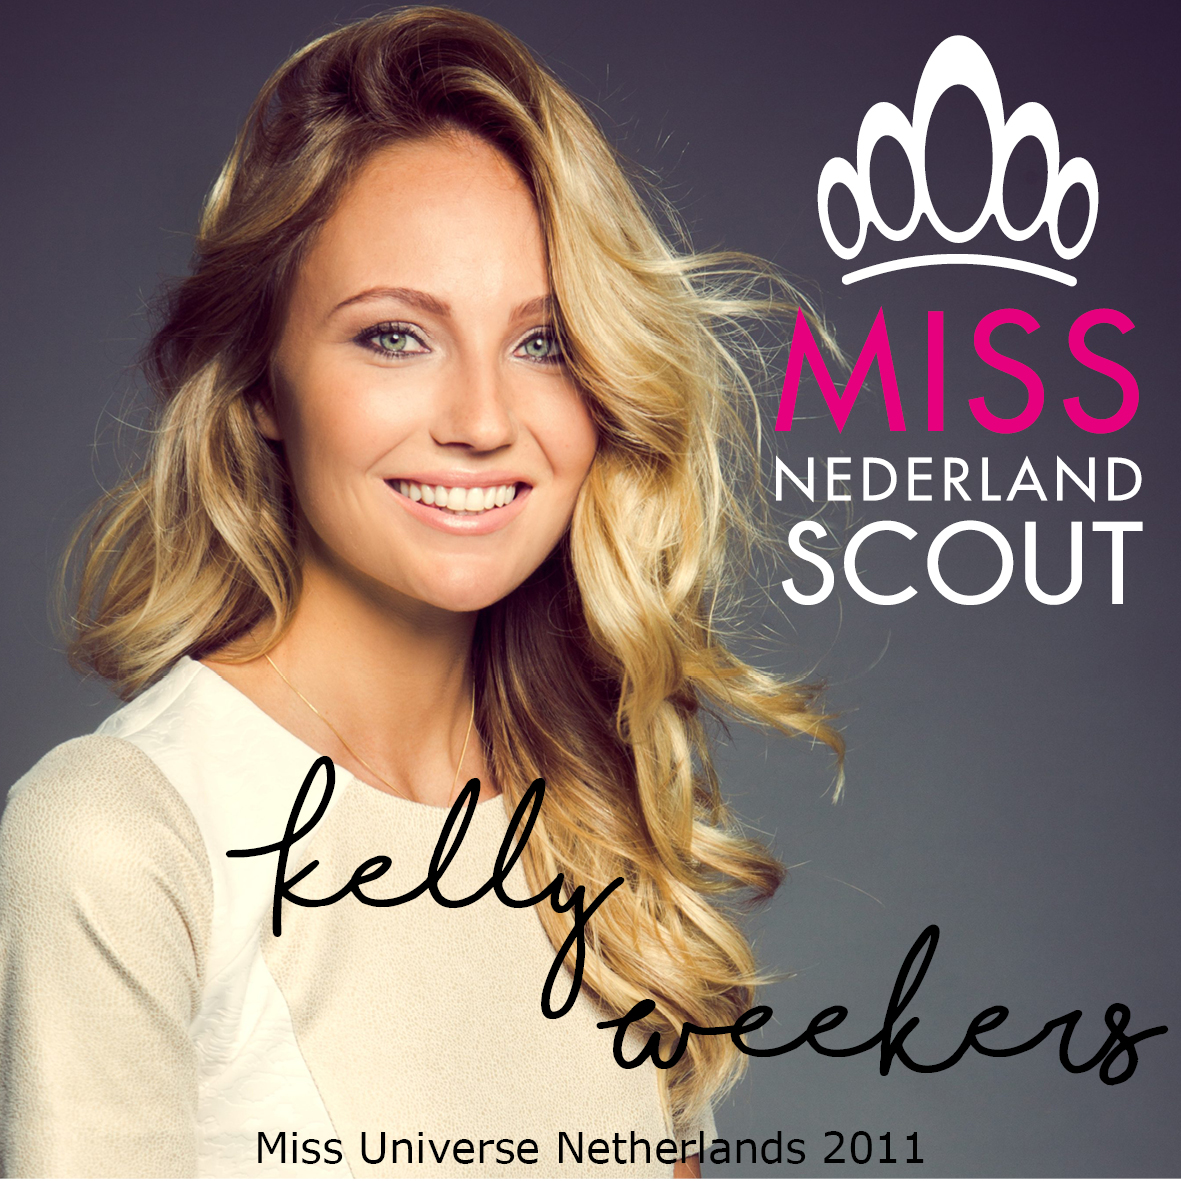 Kelly Weekers Miss Nederland Scout 2017